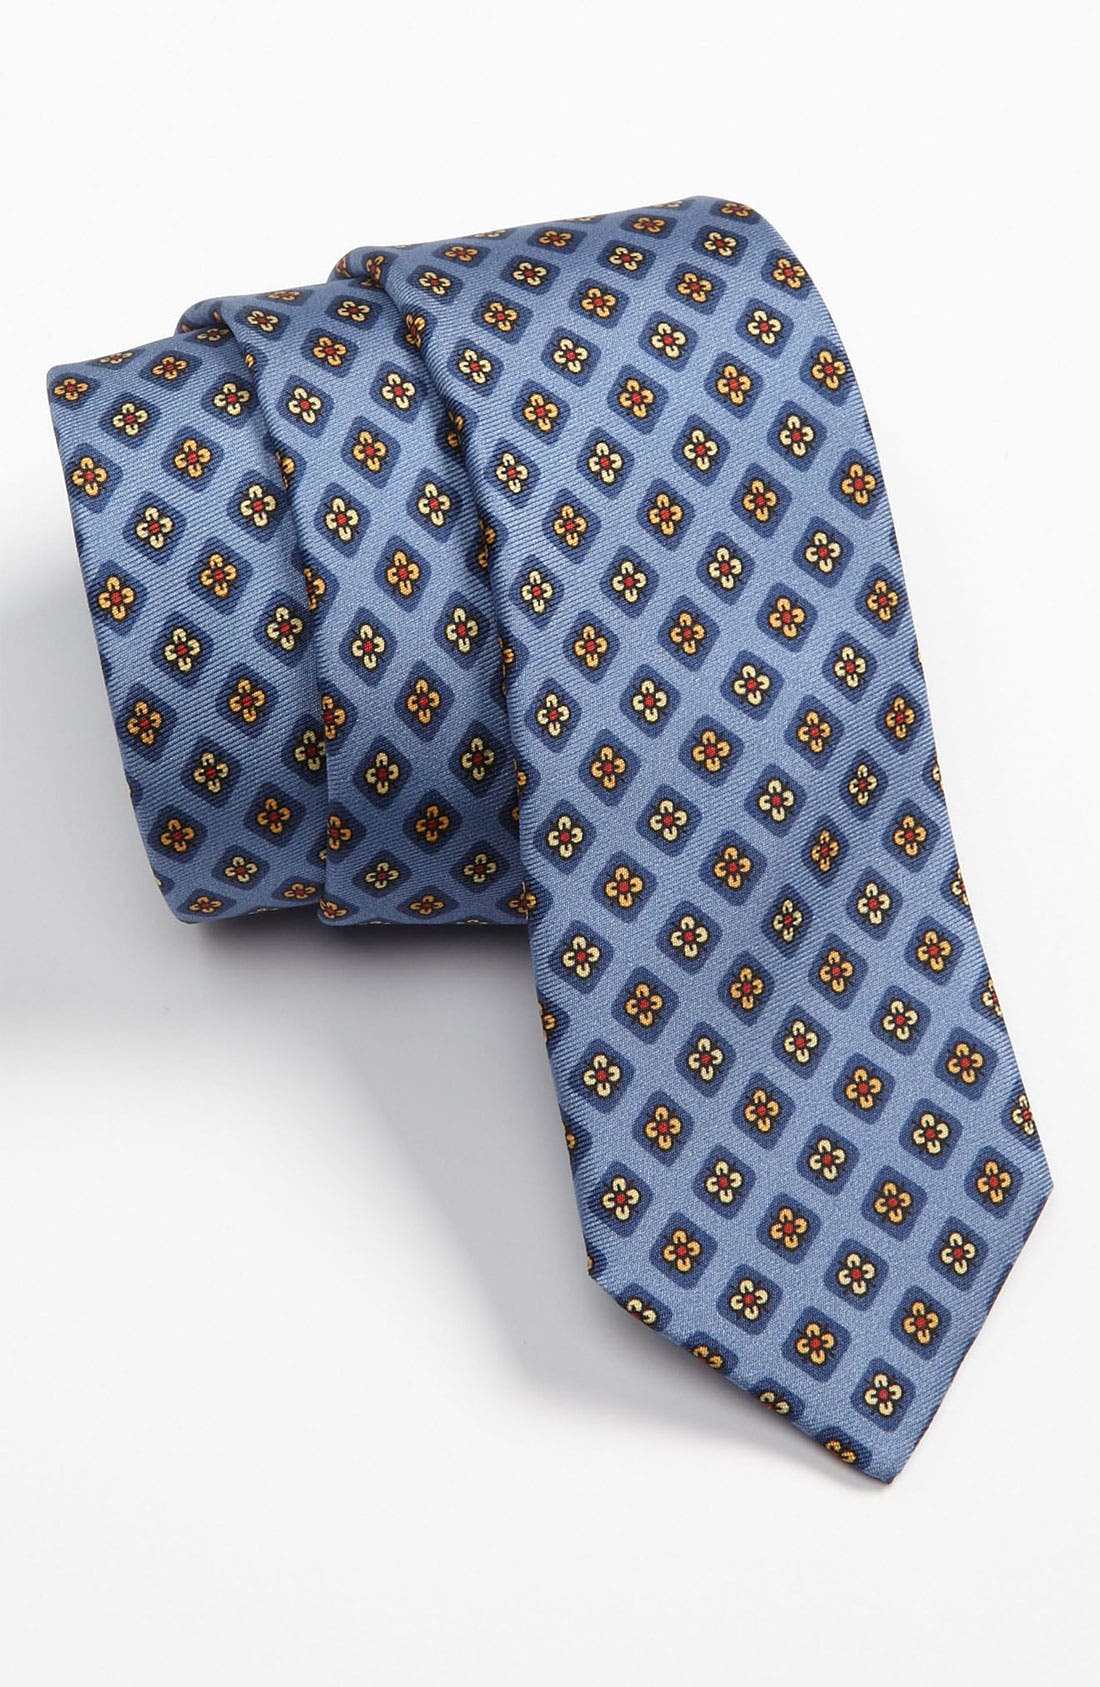 Alternate Image 1 Selected - David Hart Woven Silk Tie